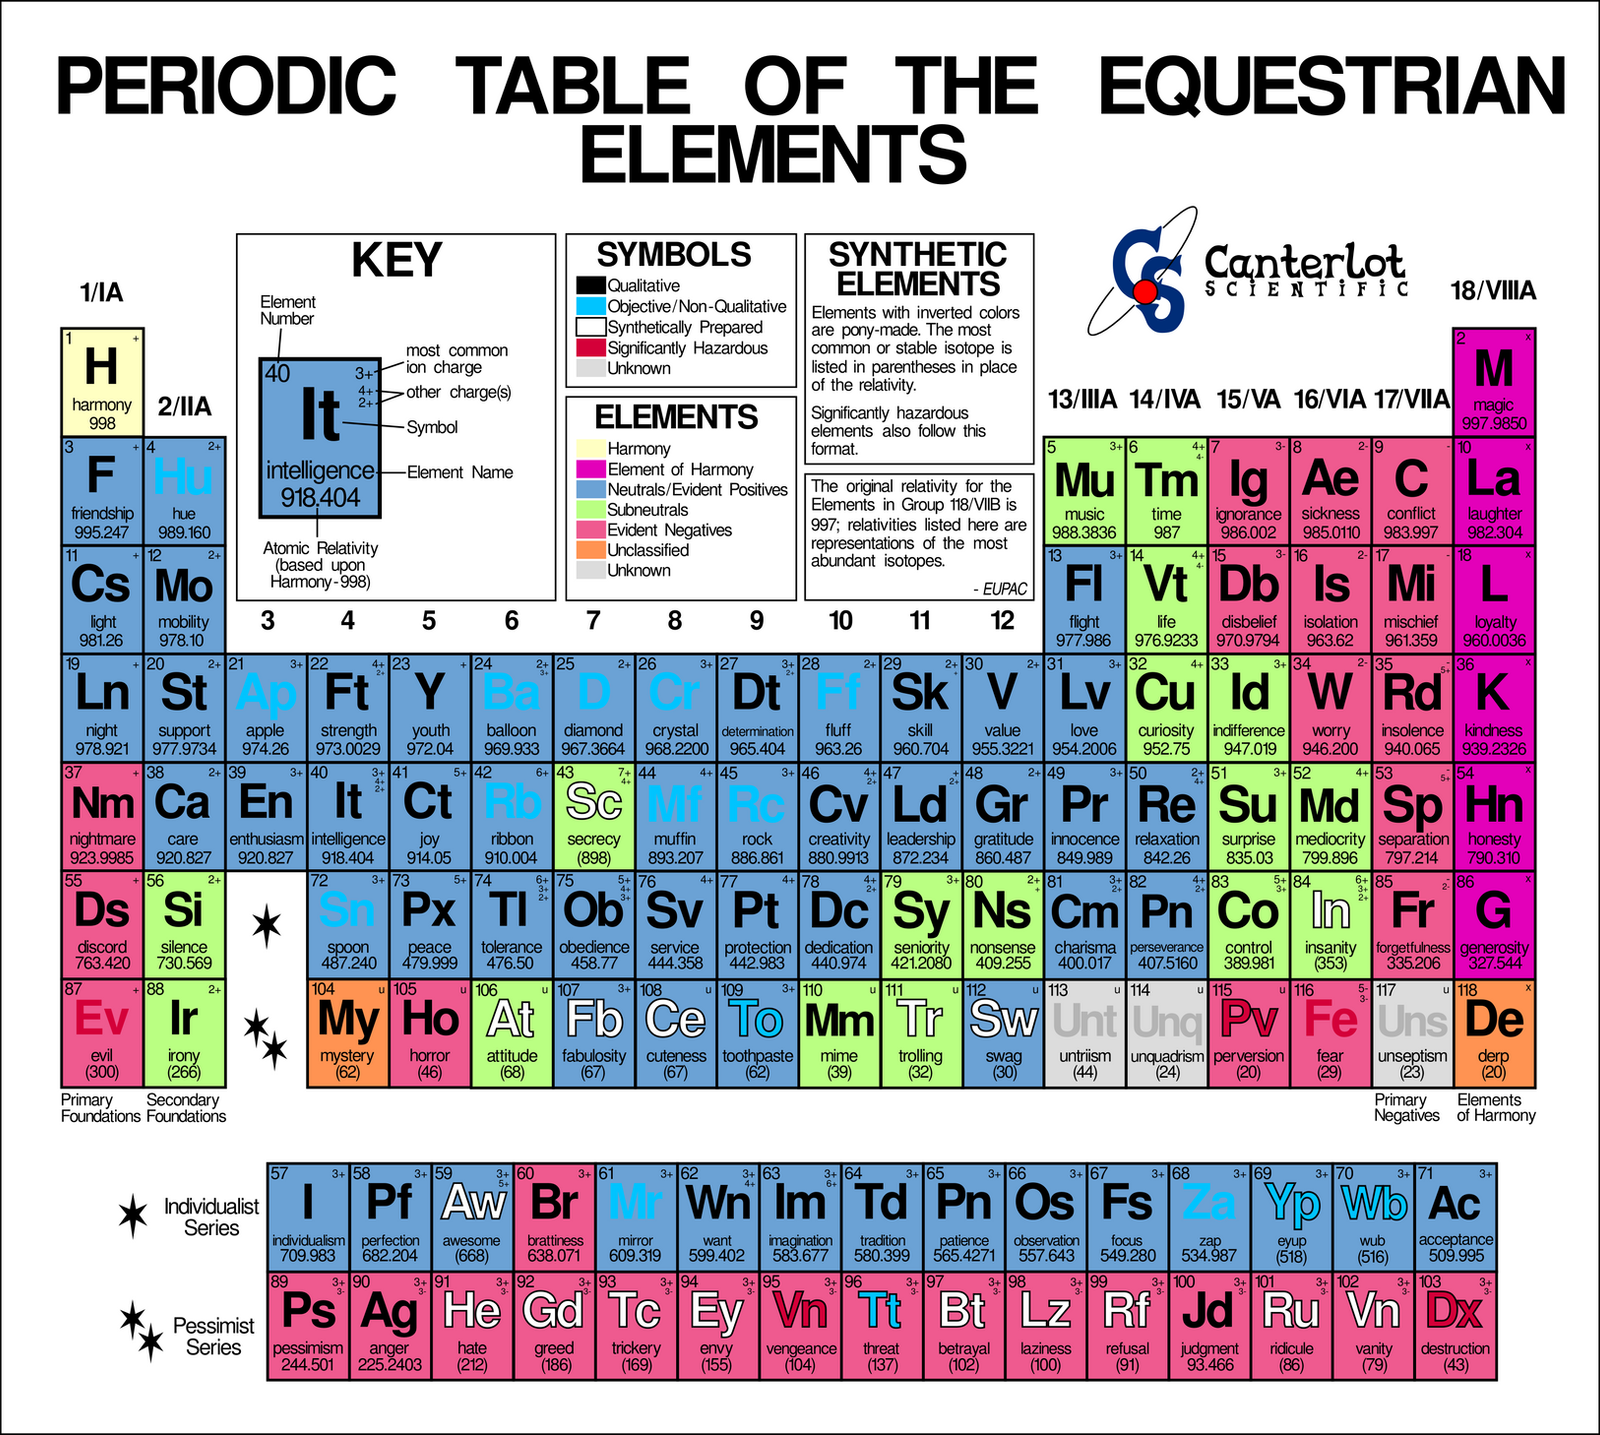 Mlp periodic table of the equestrian elements by powerson01 on mlp periodic table of the equestrian elements by powerson01 gamestrikefo Choice Image